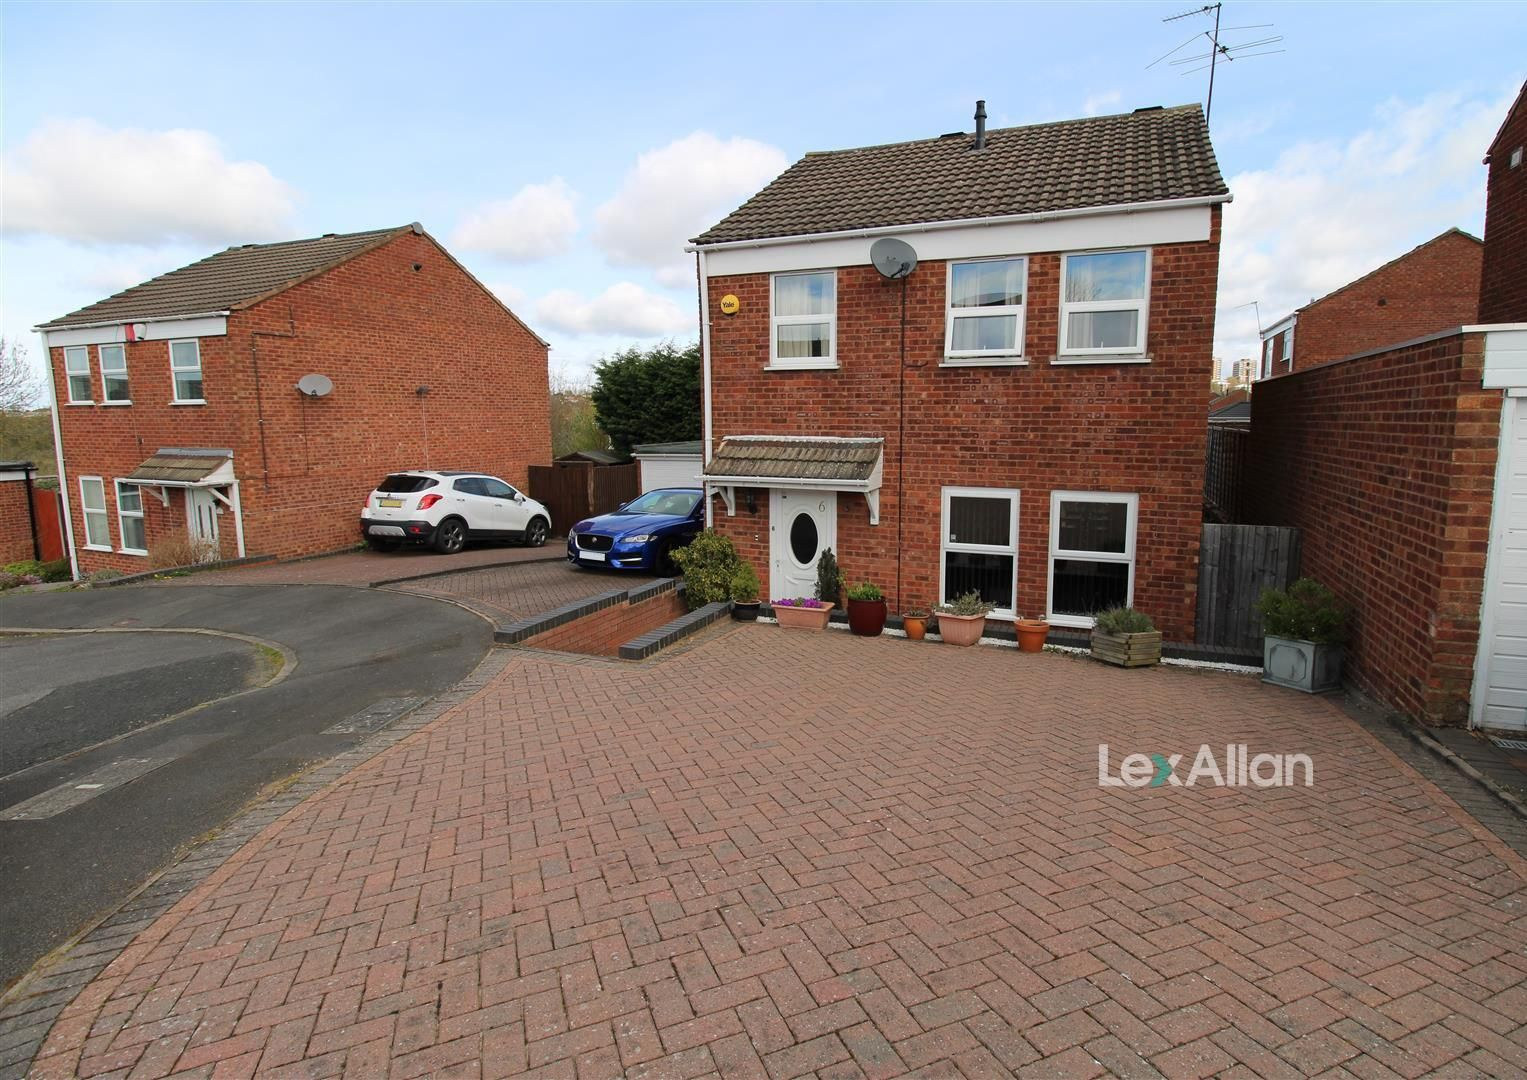 3 bed detached for sale, DY5